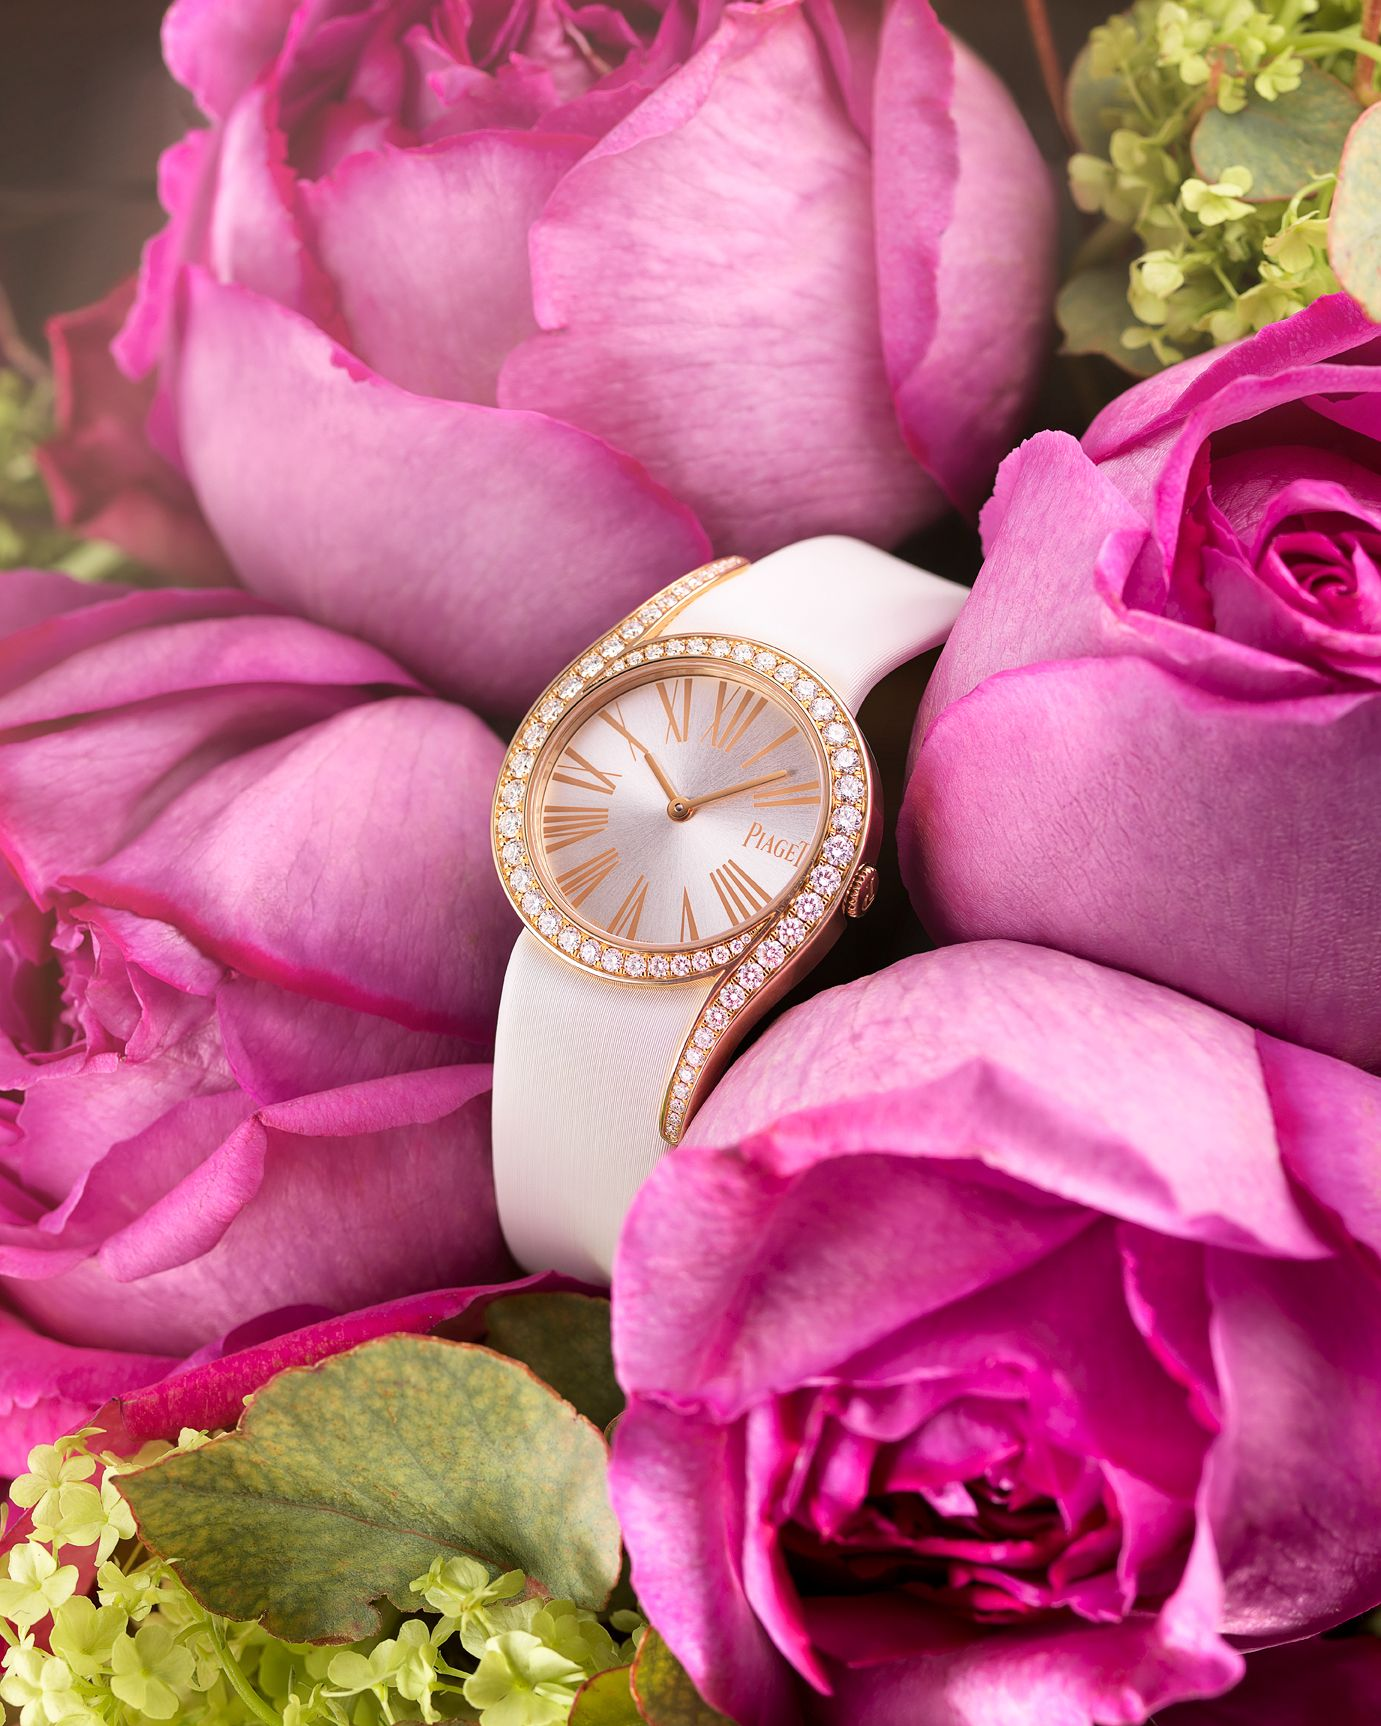 Surprise The Love Of Your Life With Piaget This Valentine's Day